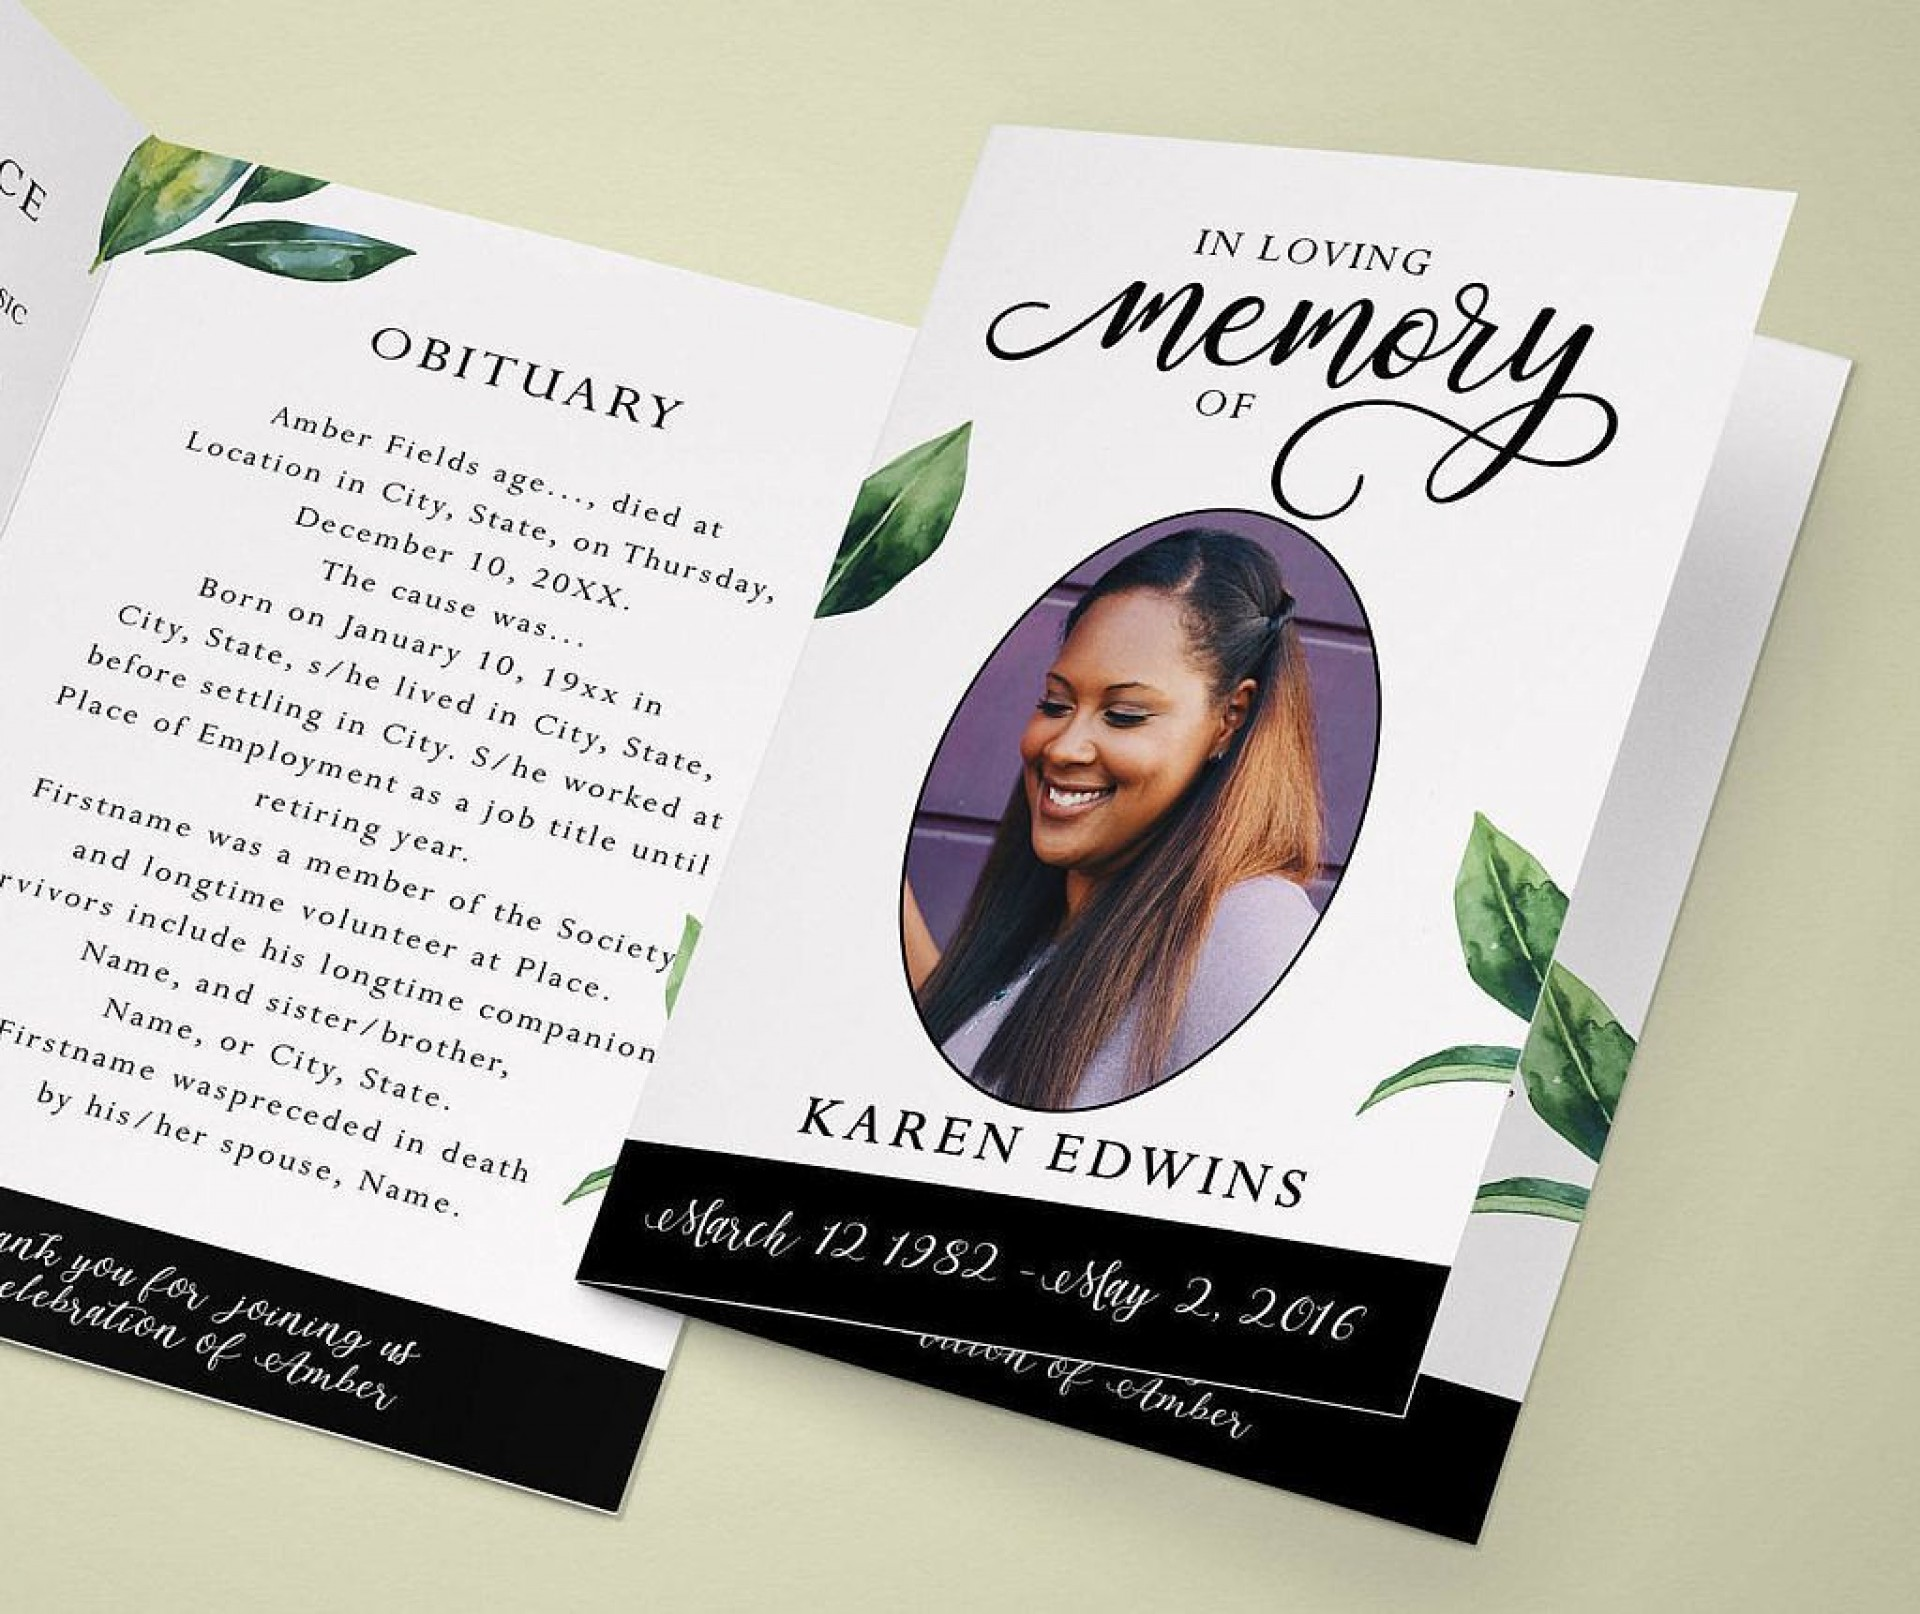 003 Fascinating In Loving Memory Template Word Concept 1920